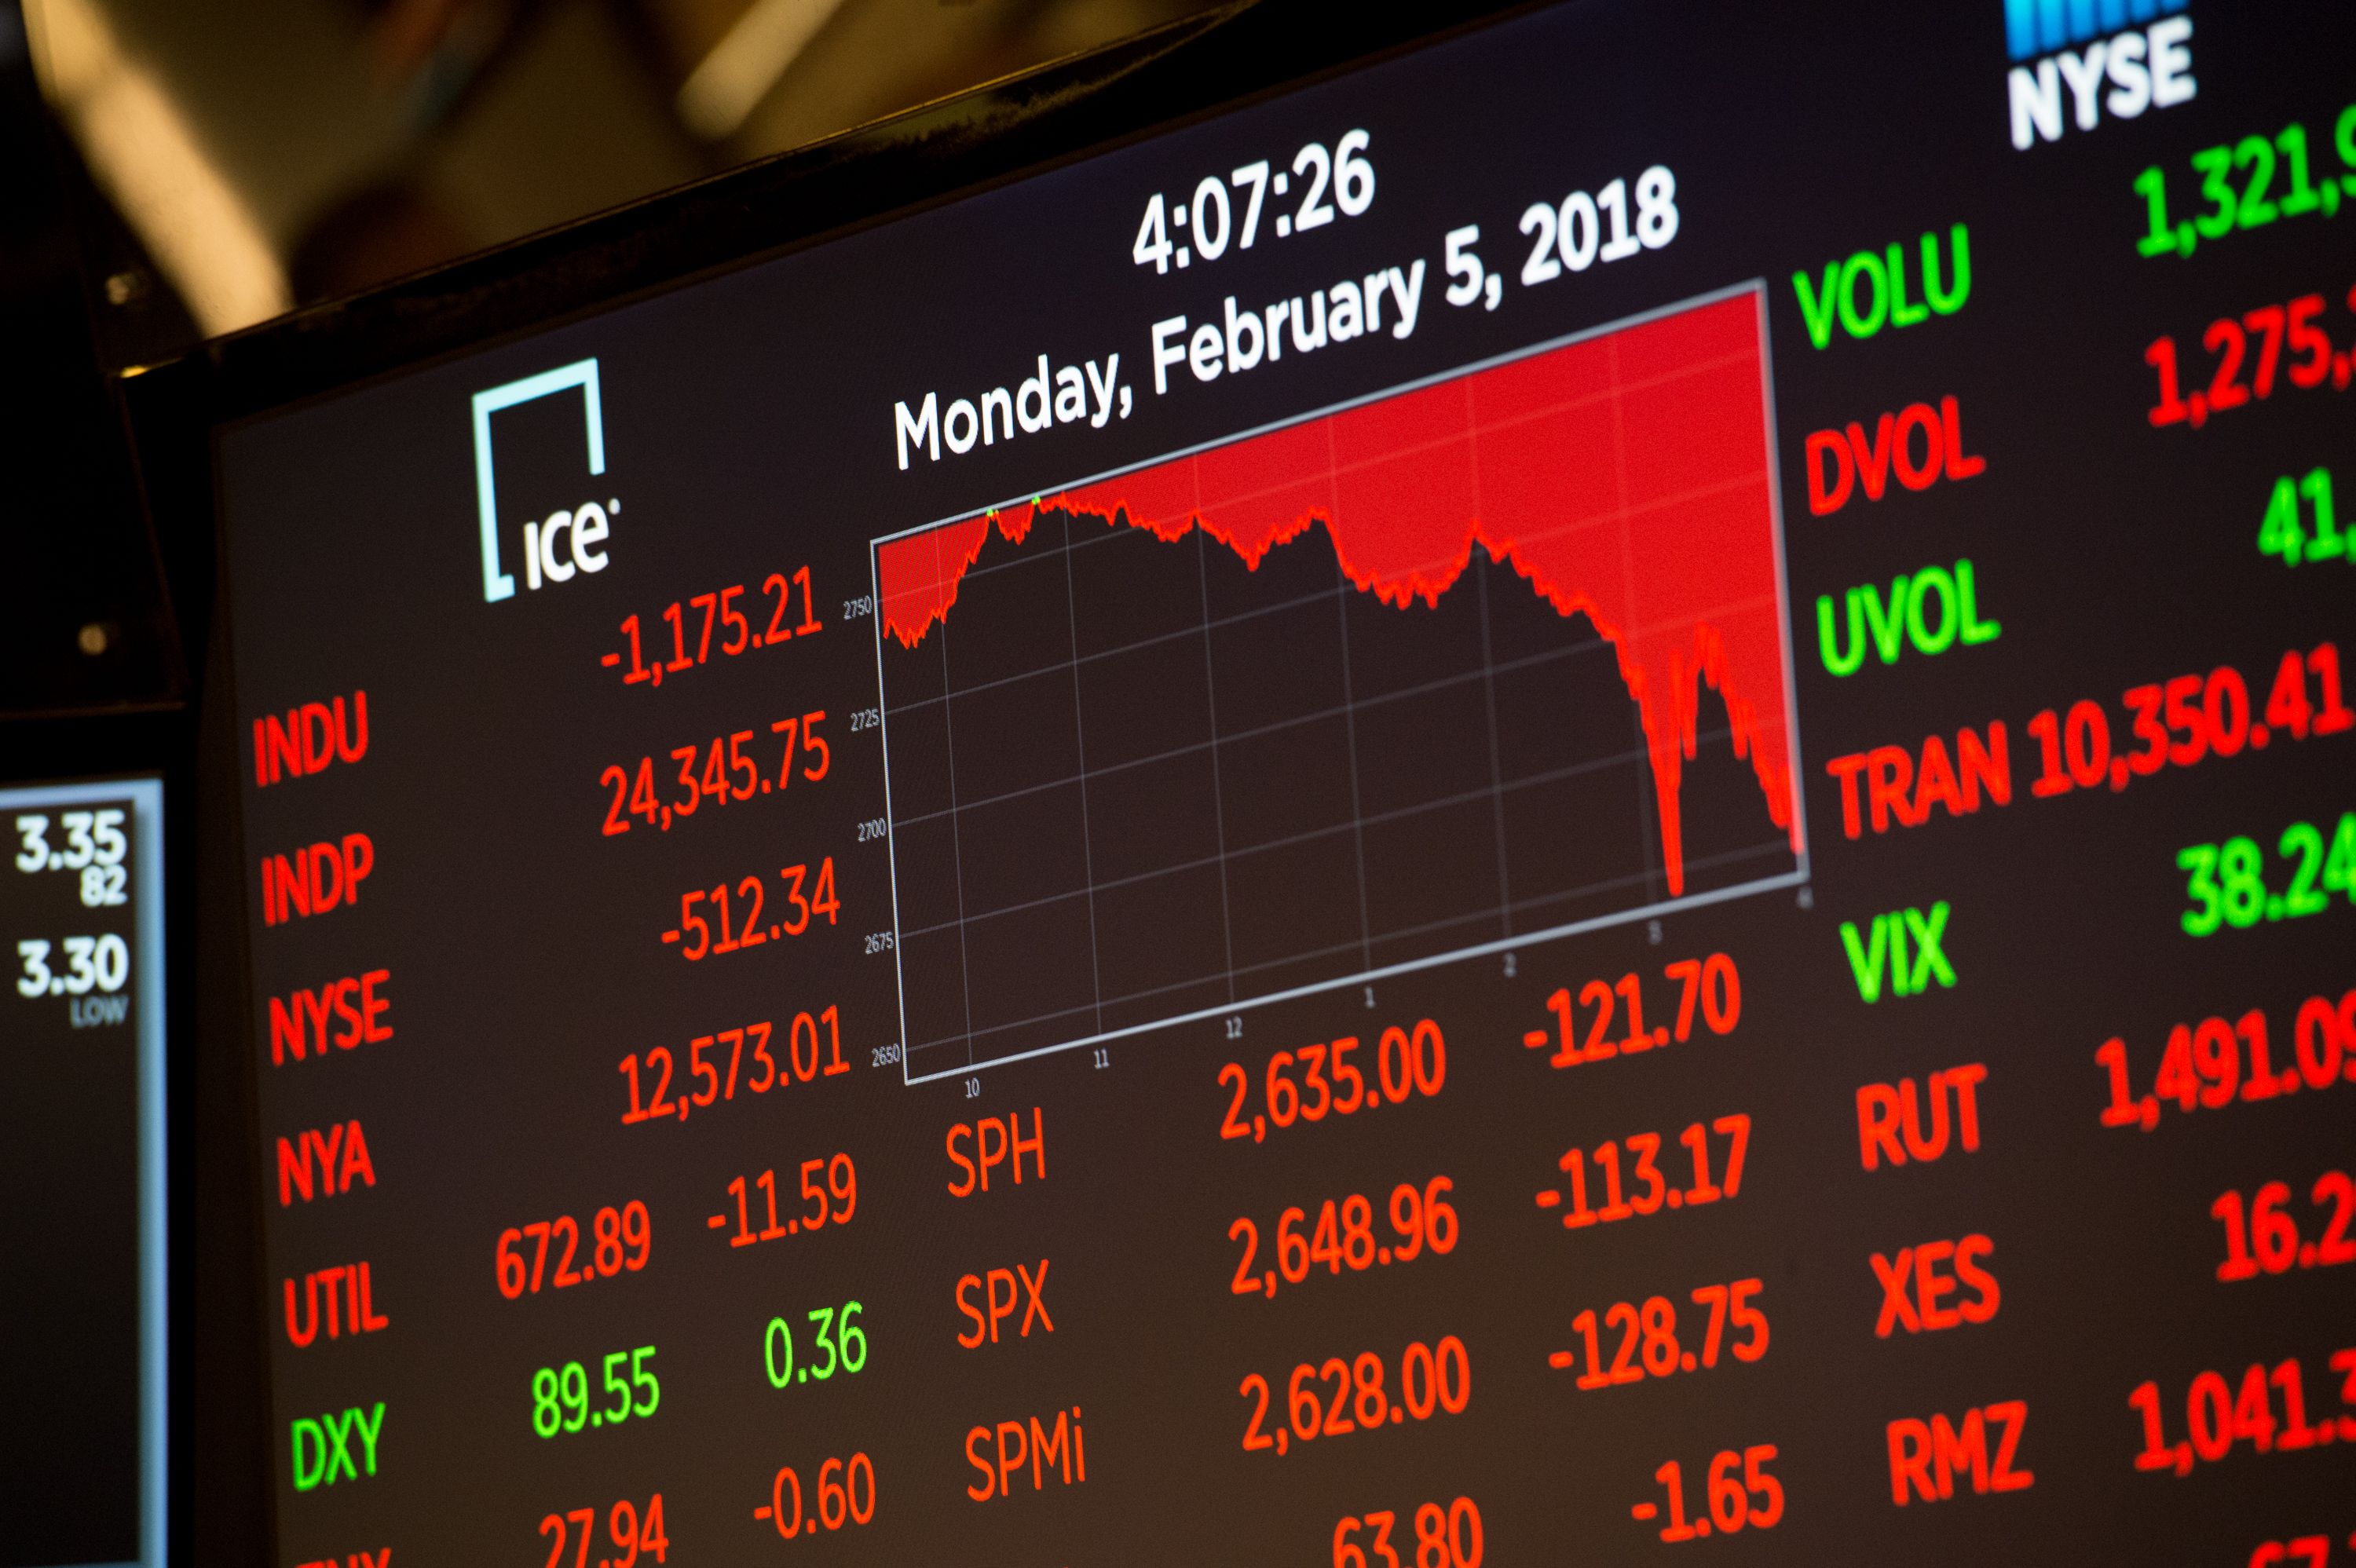 Stock market volatility wiped out investors betting against the VIX